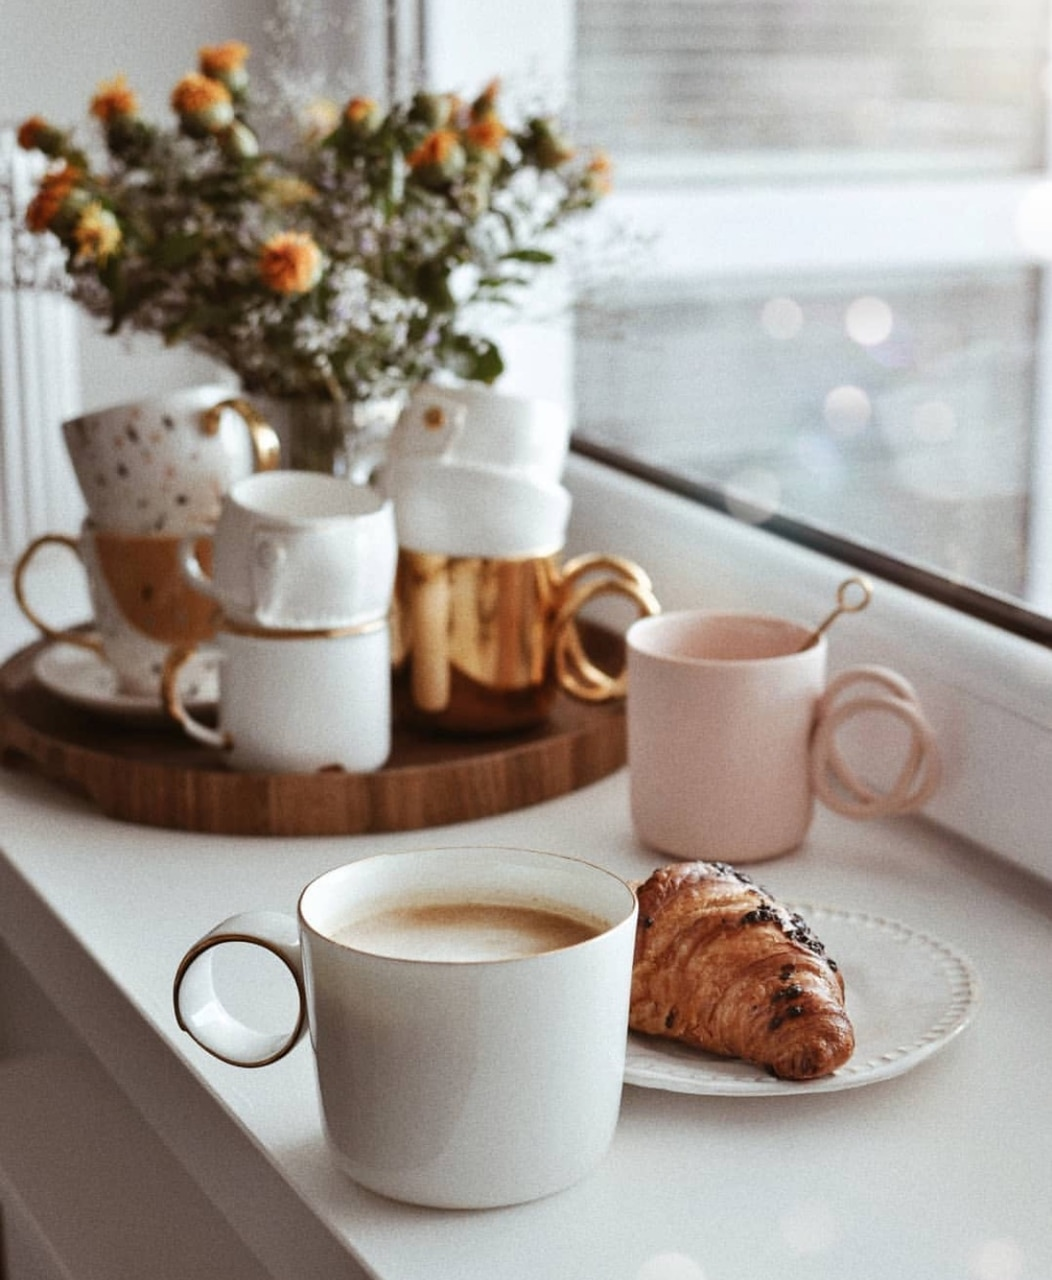 coffee and breakfast